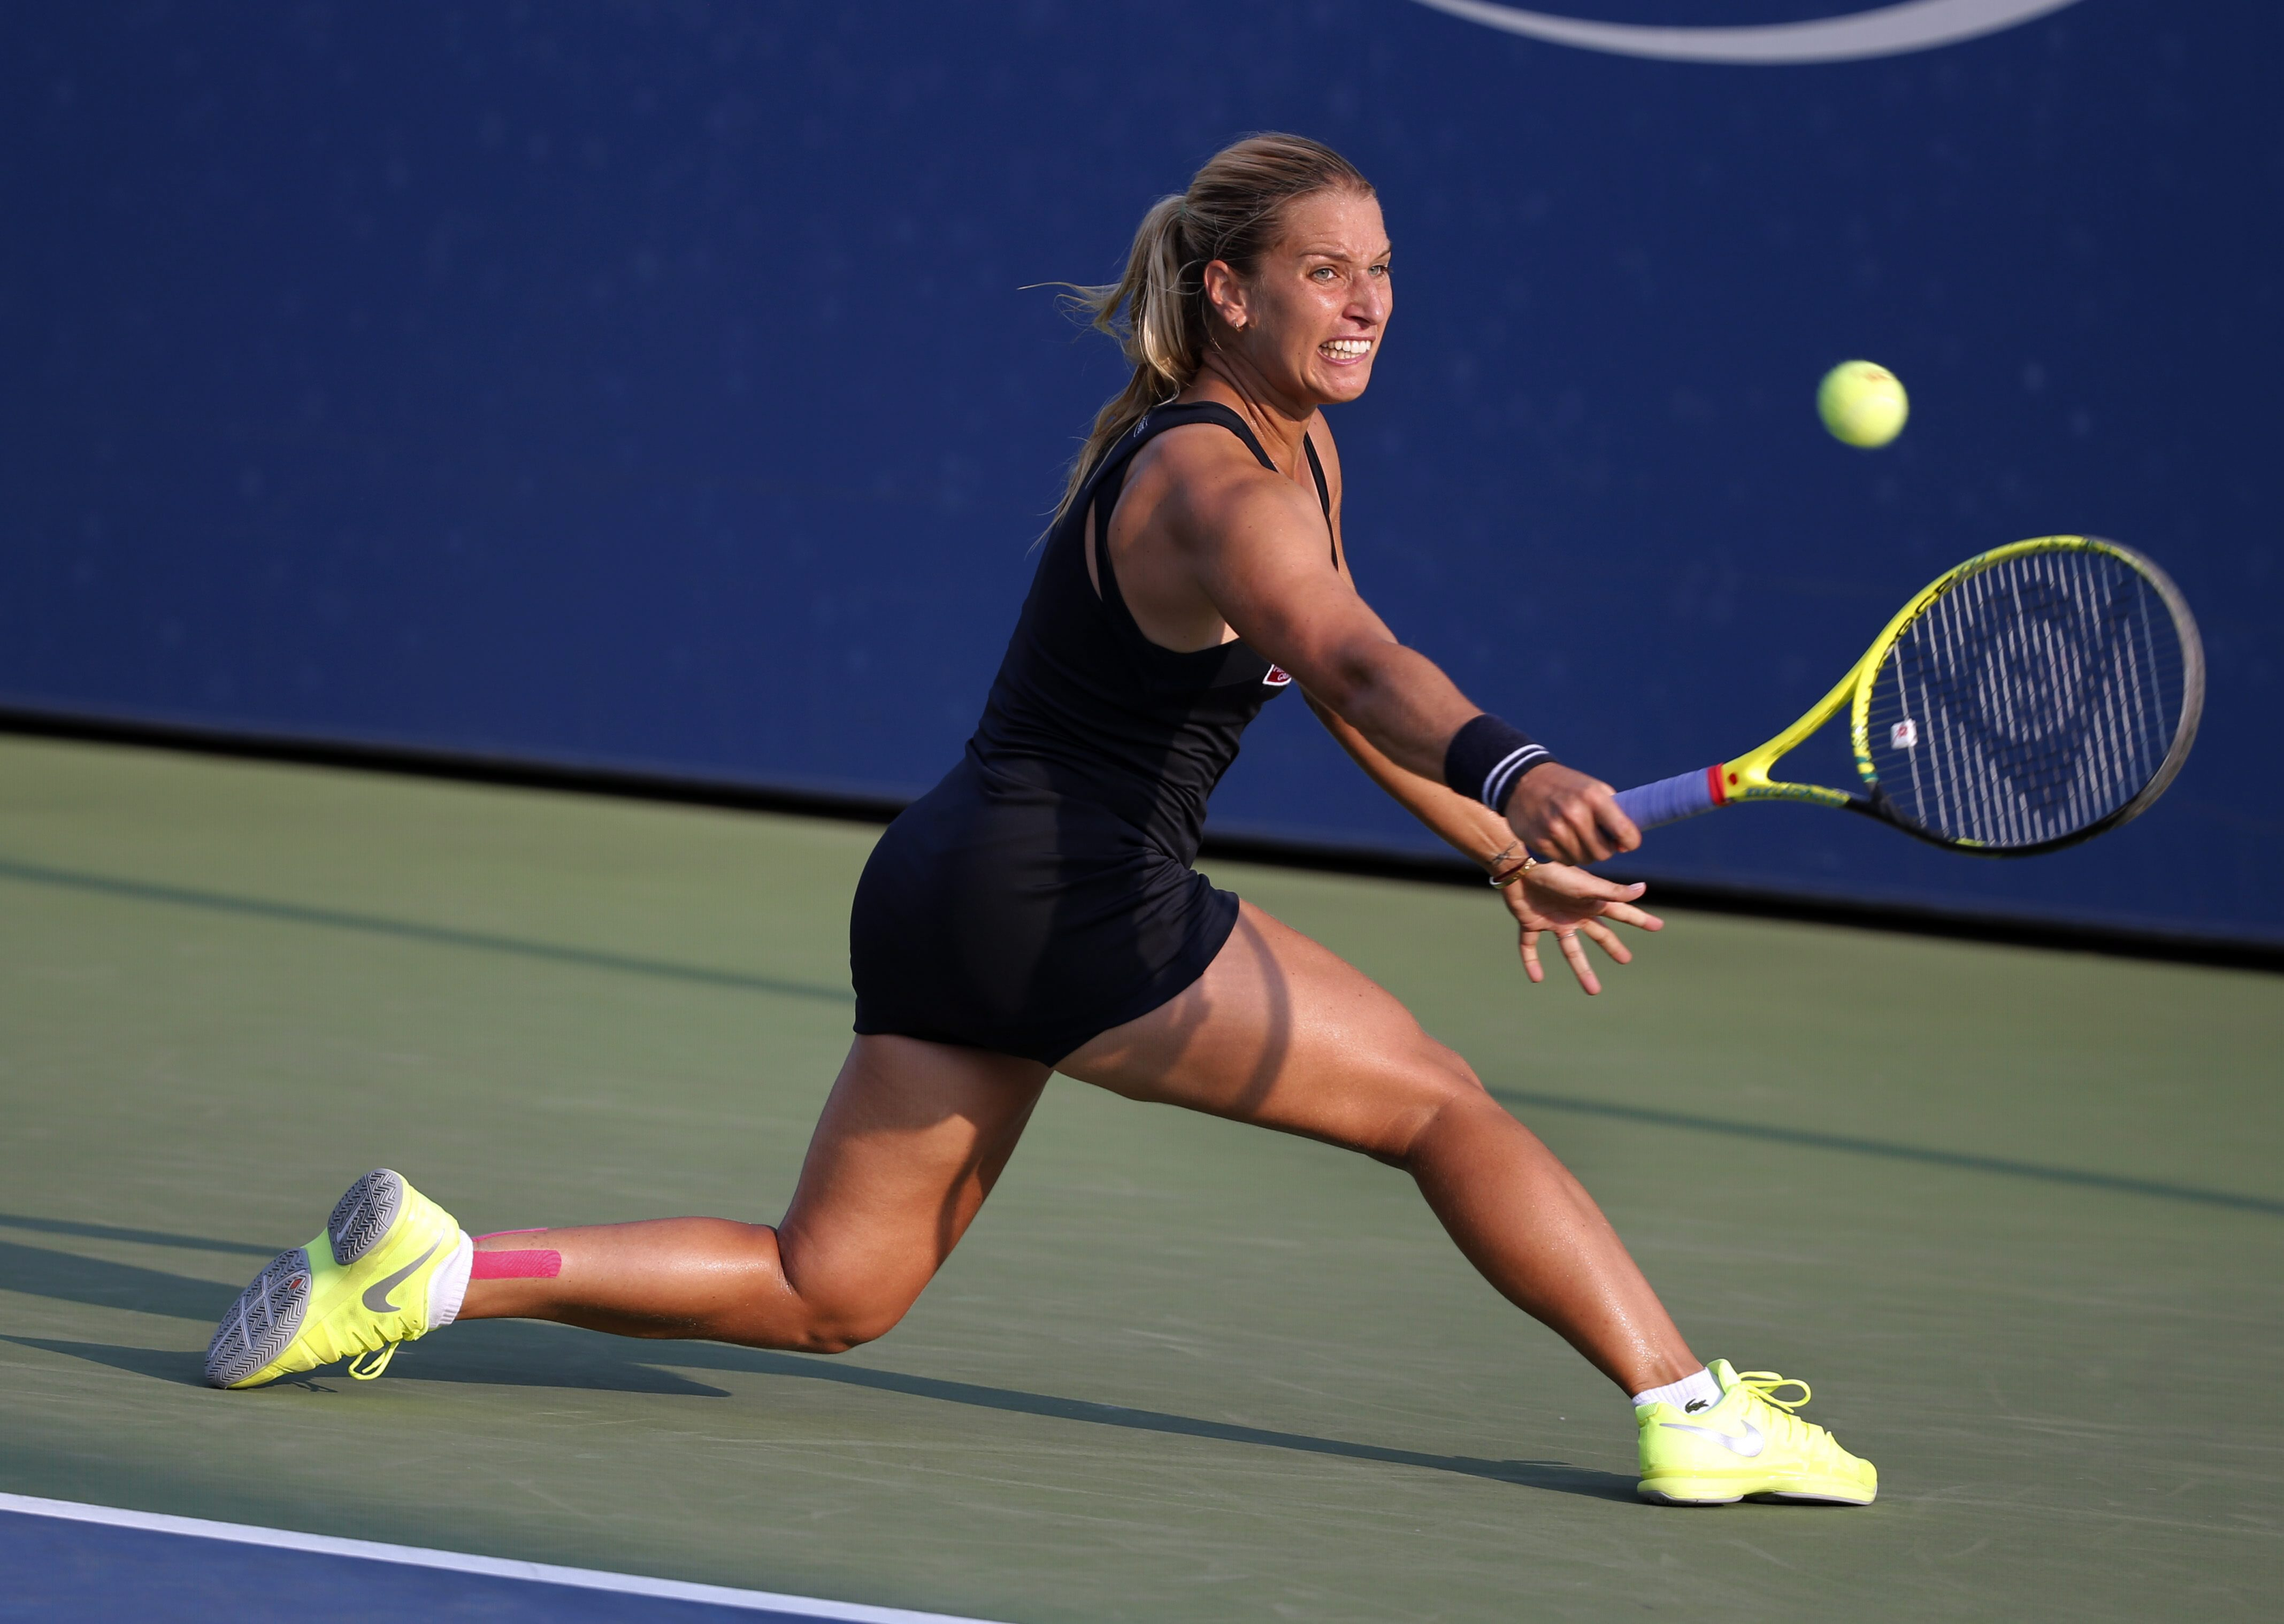 Dominika Cibulkova, of Slovakia, returns a shot against Jessica Pegula in the second round of the U.S. Open tennis tournament, Wednesday, Sept. 2, 2015, in New York. (AP Photo/Kathy Willens)